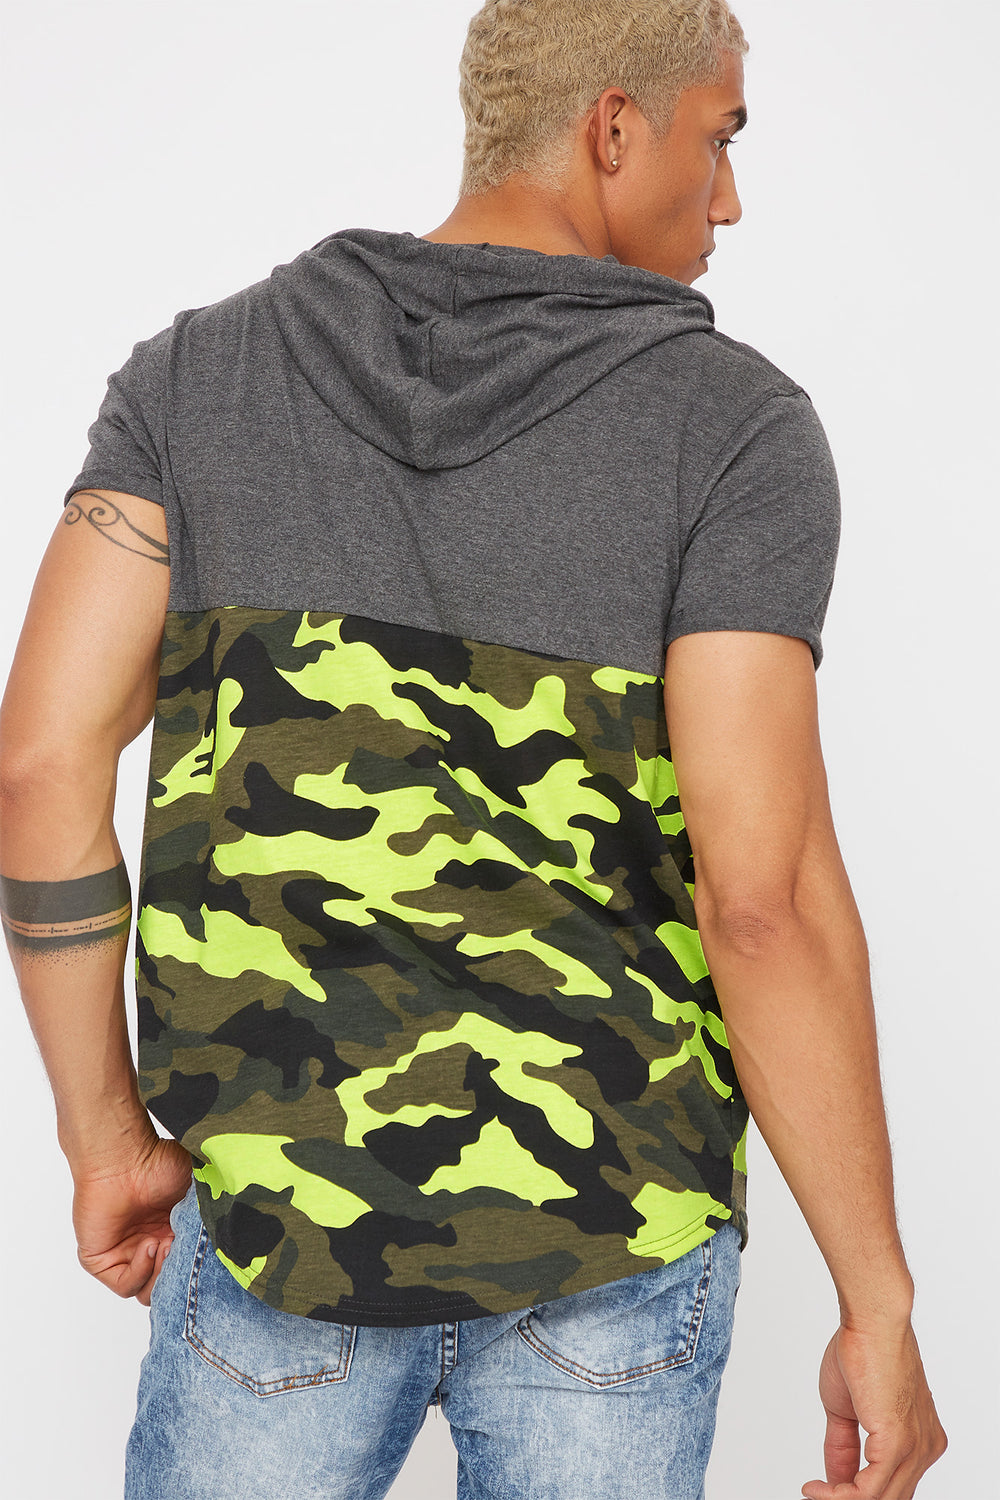 Hooded Graphic Contrast Camo T-Shirt Charcoal